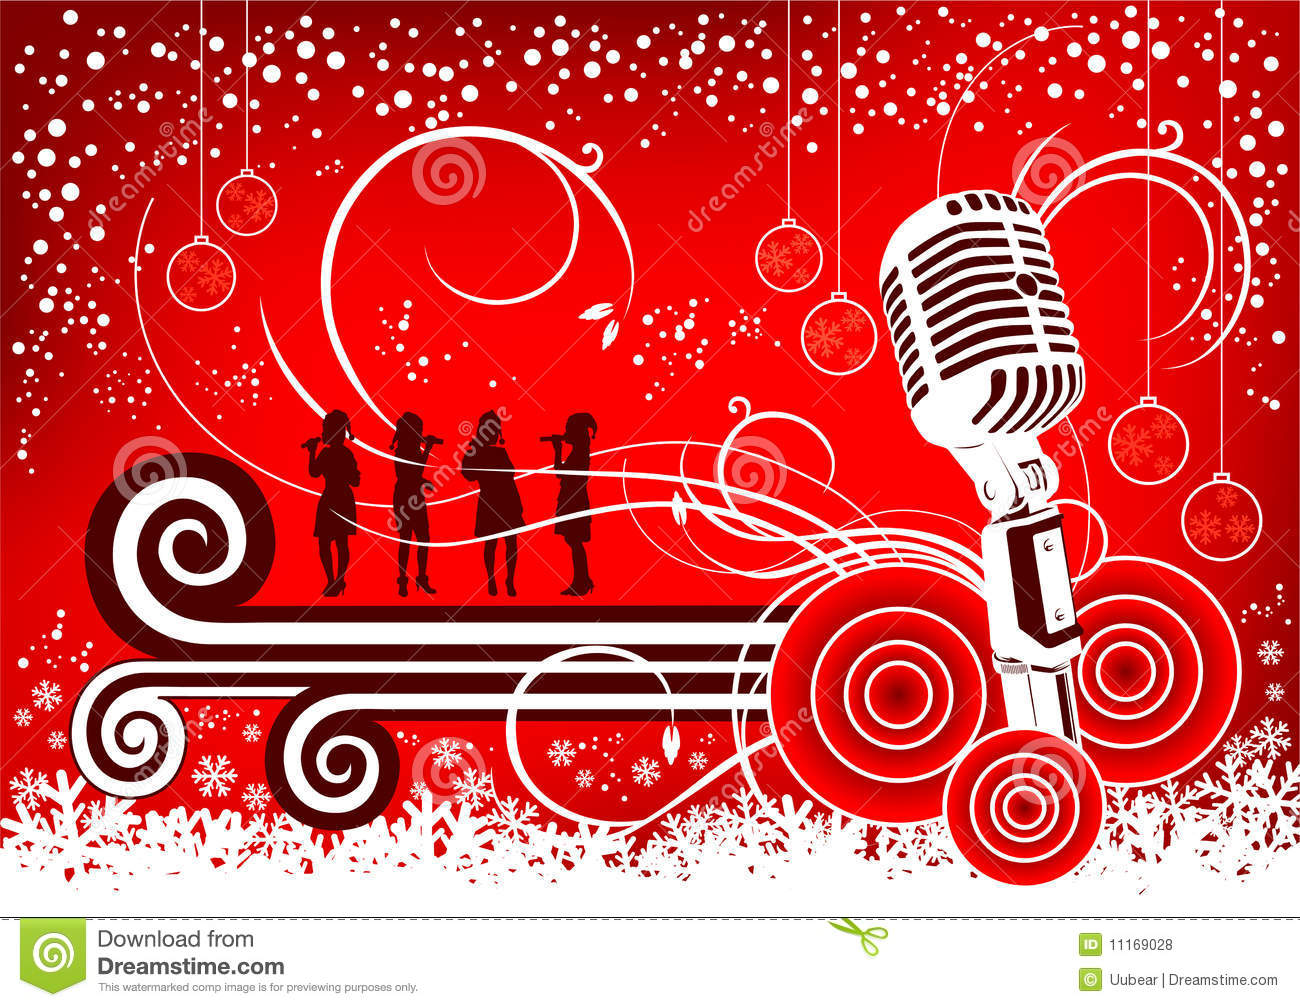 Illustration music background in christmas season with snow falling ...